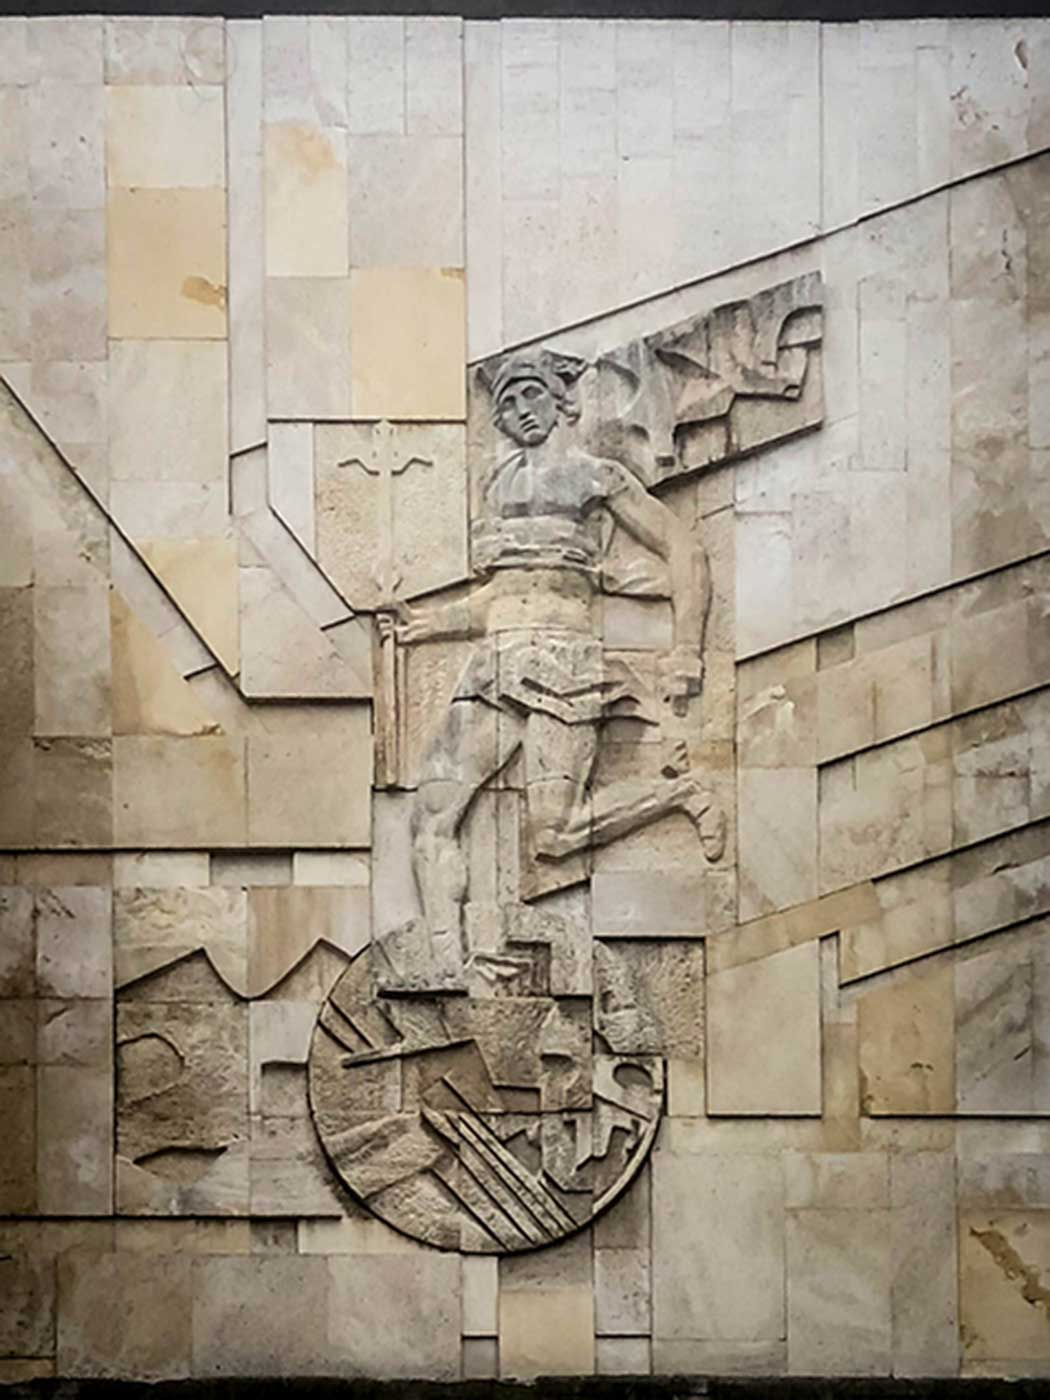 A likeness of Hermes at Central City Square, Shumen, Bulgaria.